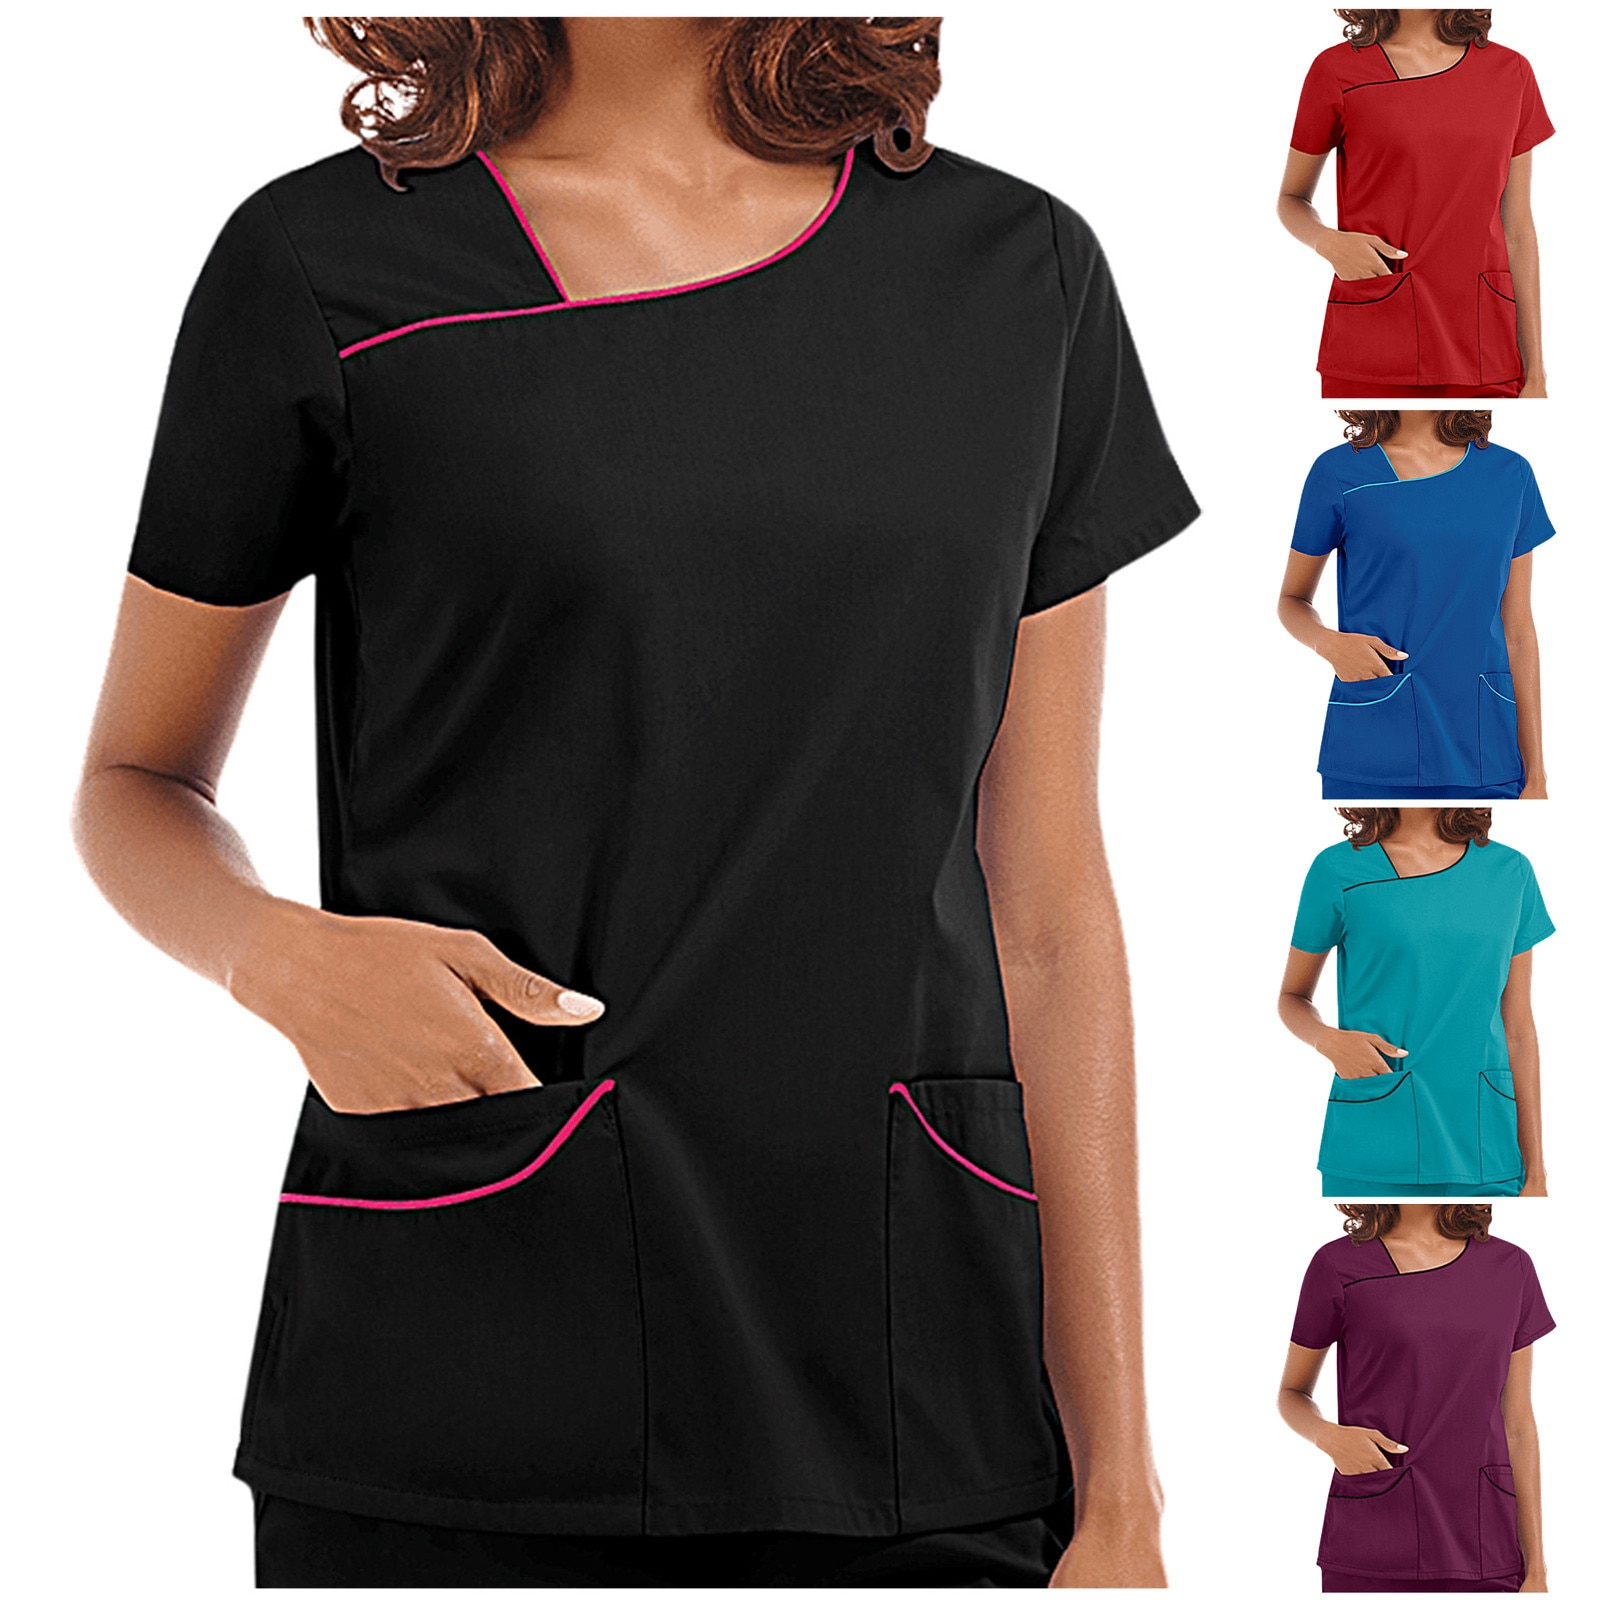 2021 Women's Short Sleeve V-Neck Pocket Care Workers T-Shirt Tops Summer Workwear Tops  Printed Nurse Uniform Clinic Blouse